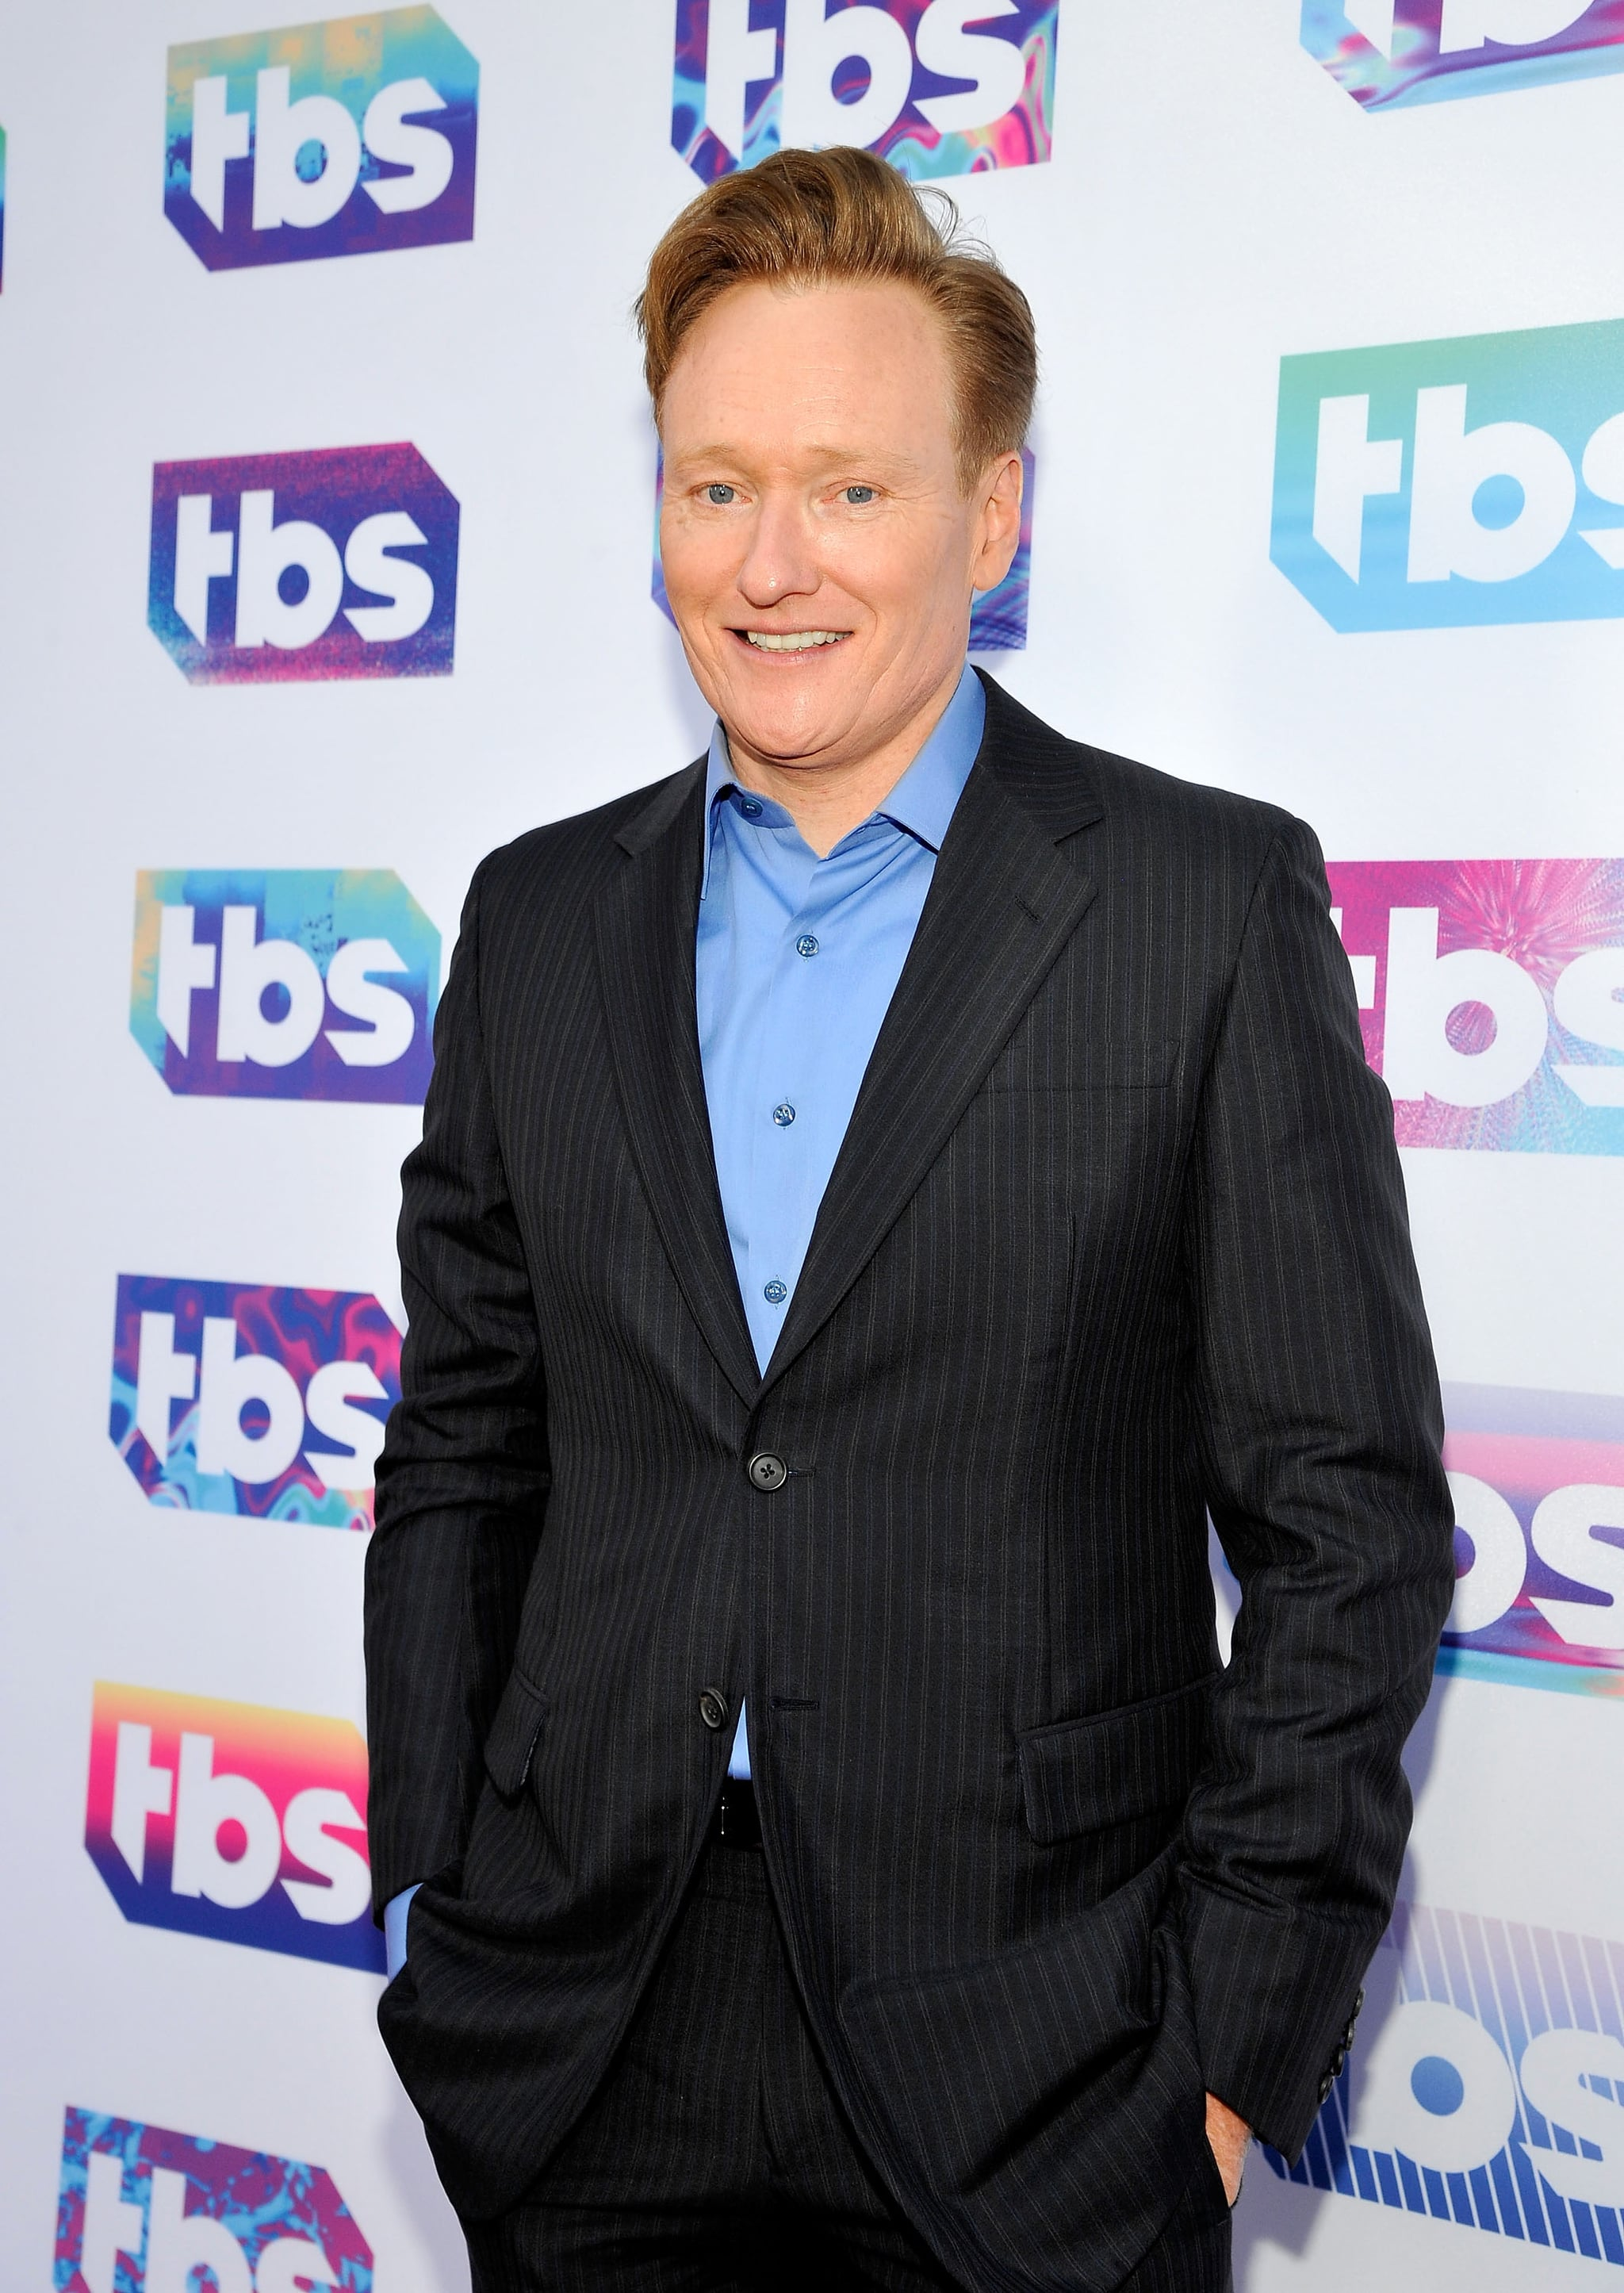 LOS ANGELES, CA - MAY 24:  Comedian Conan O'Brien attends TBS Night Out LA at The Theater at The Ace Hotel on May 24, 2016 in Los Angeles, California. 26162_001  (Photo by John Sciulli/WireImage)